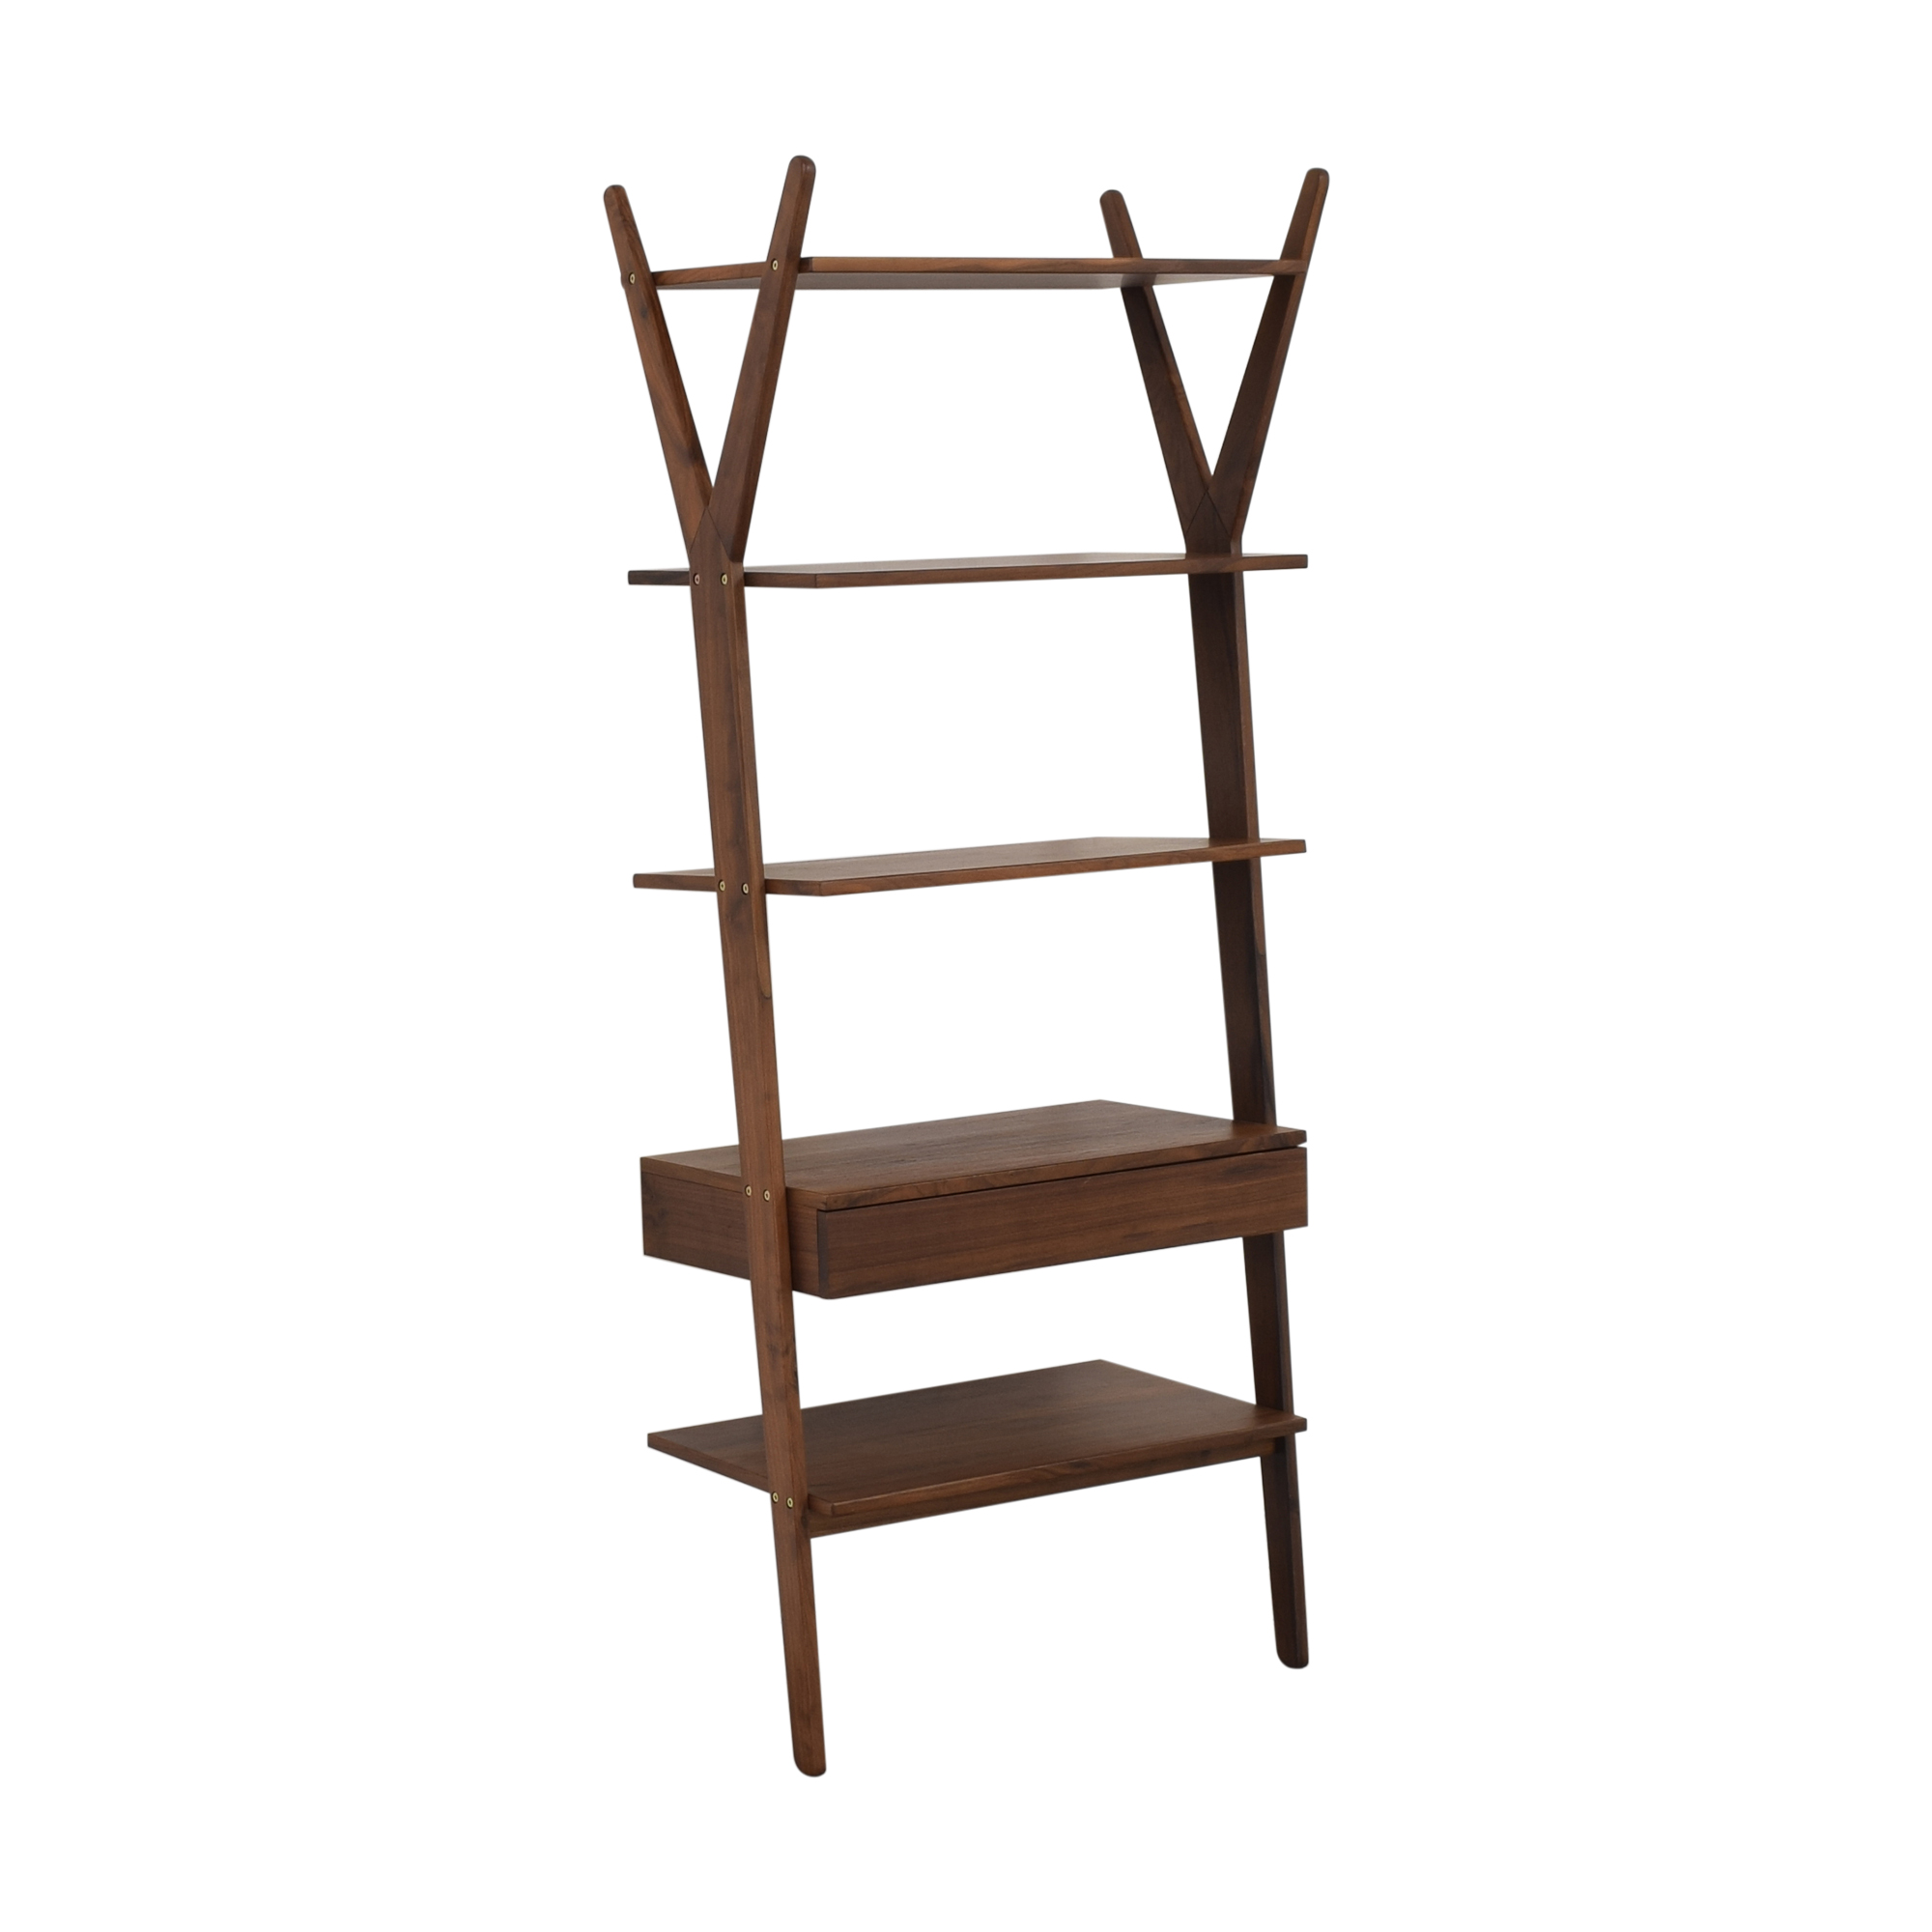 Article Article Lignum Walnut Bookshelf discount